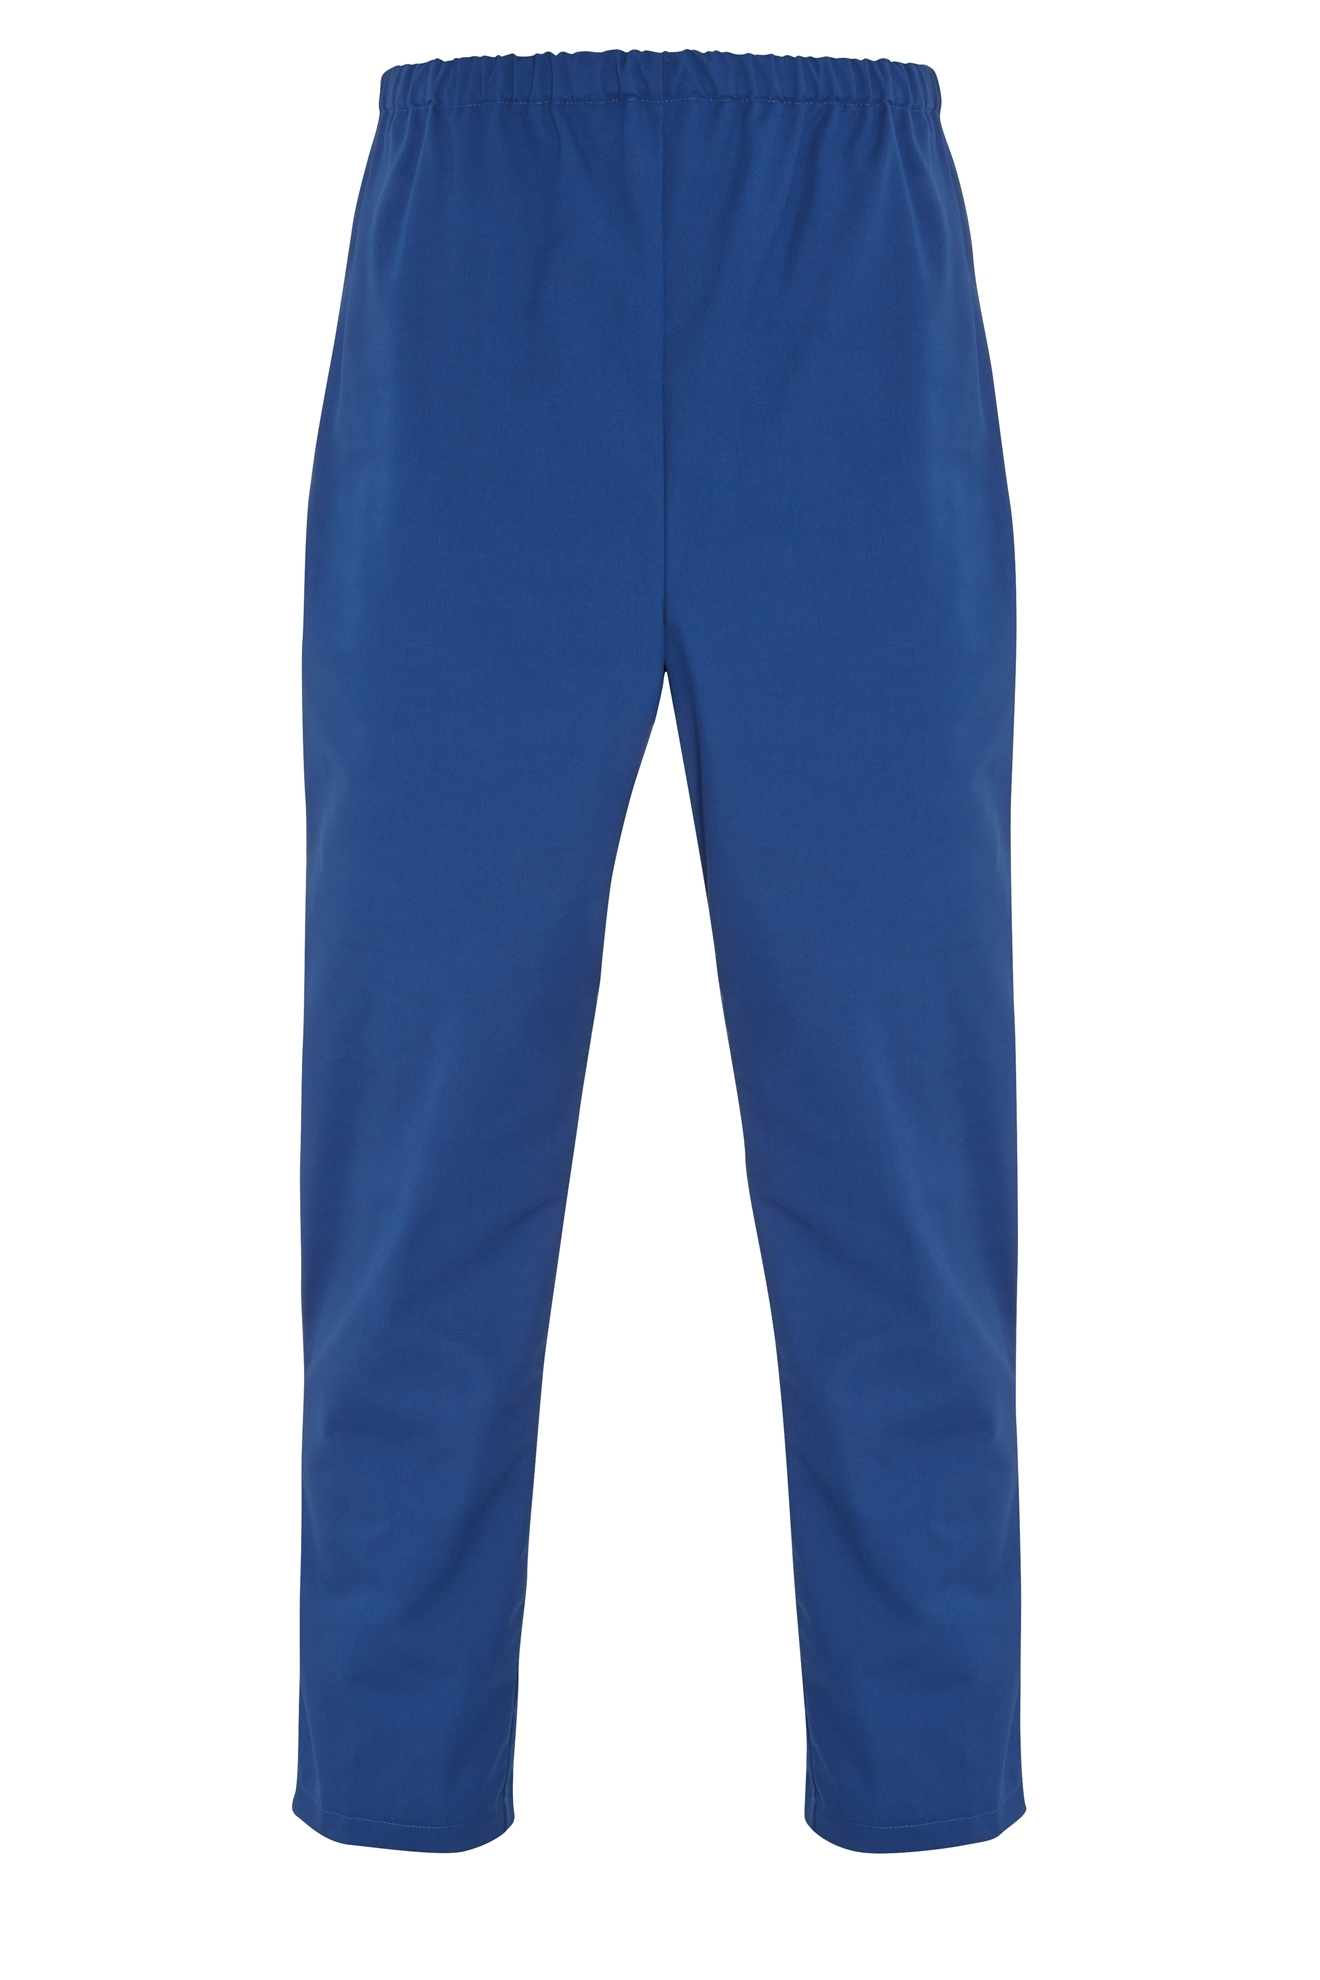 Picture of Food Trade Trouser with Anti Tangle Tape No Pocket (245gsm) - Royal Blue